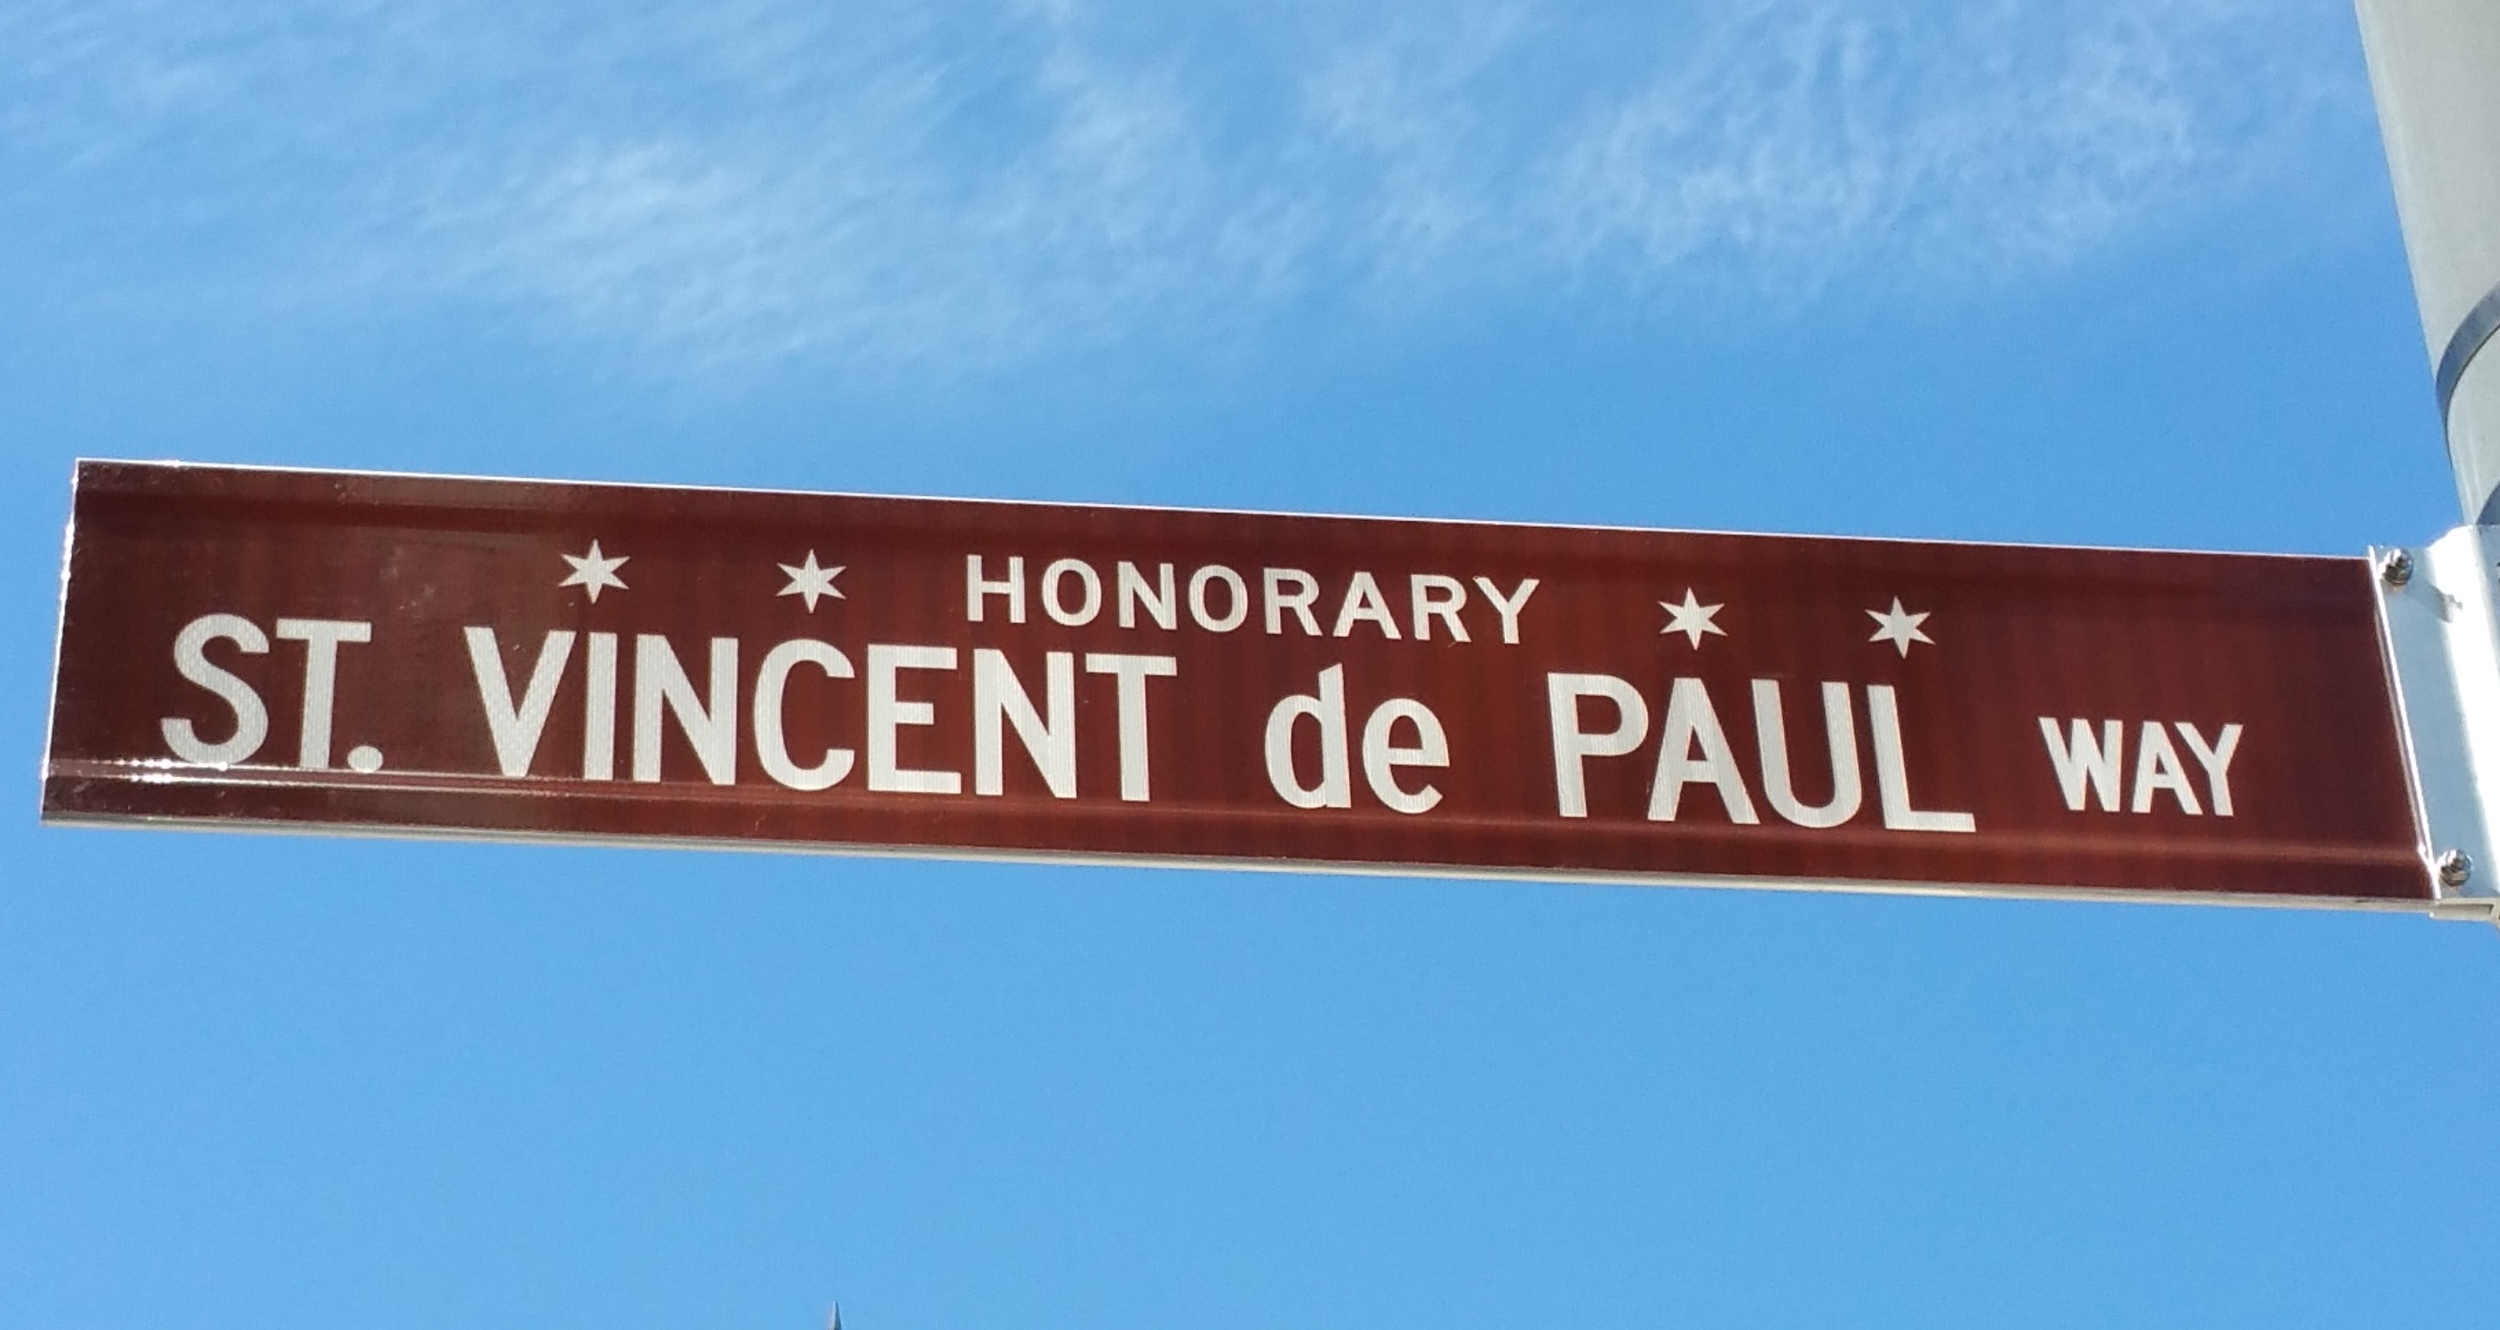 St Vincent de Paul Way - Honorary Chicago sign